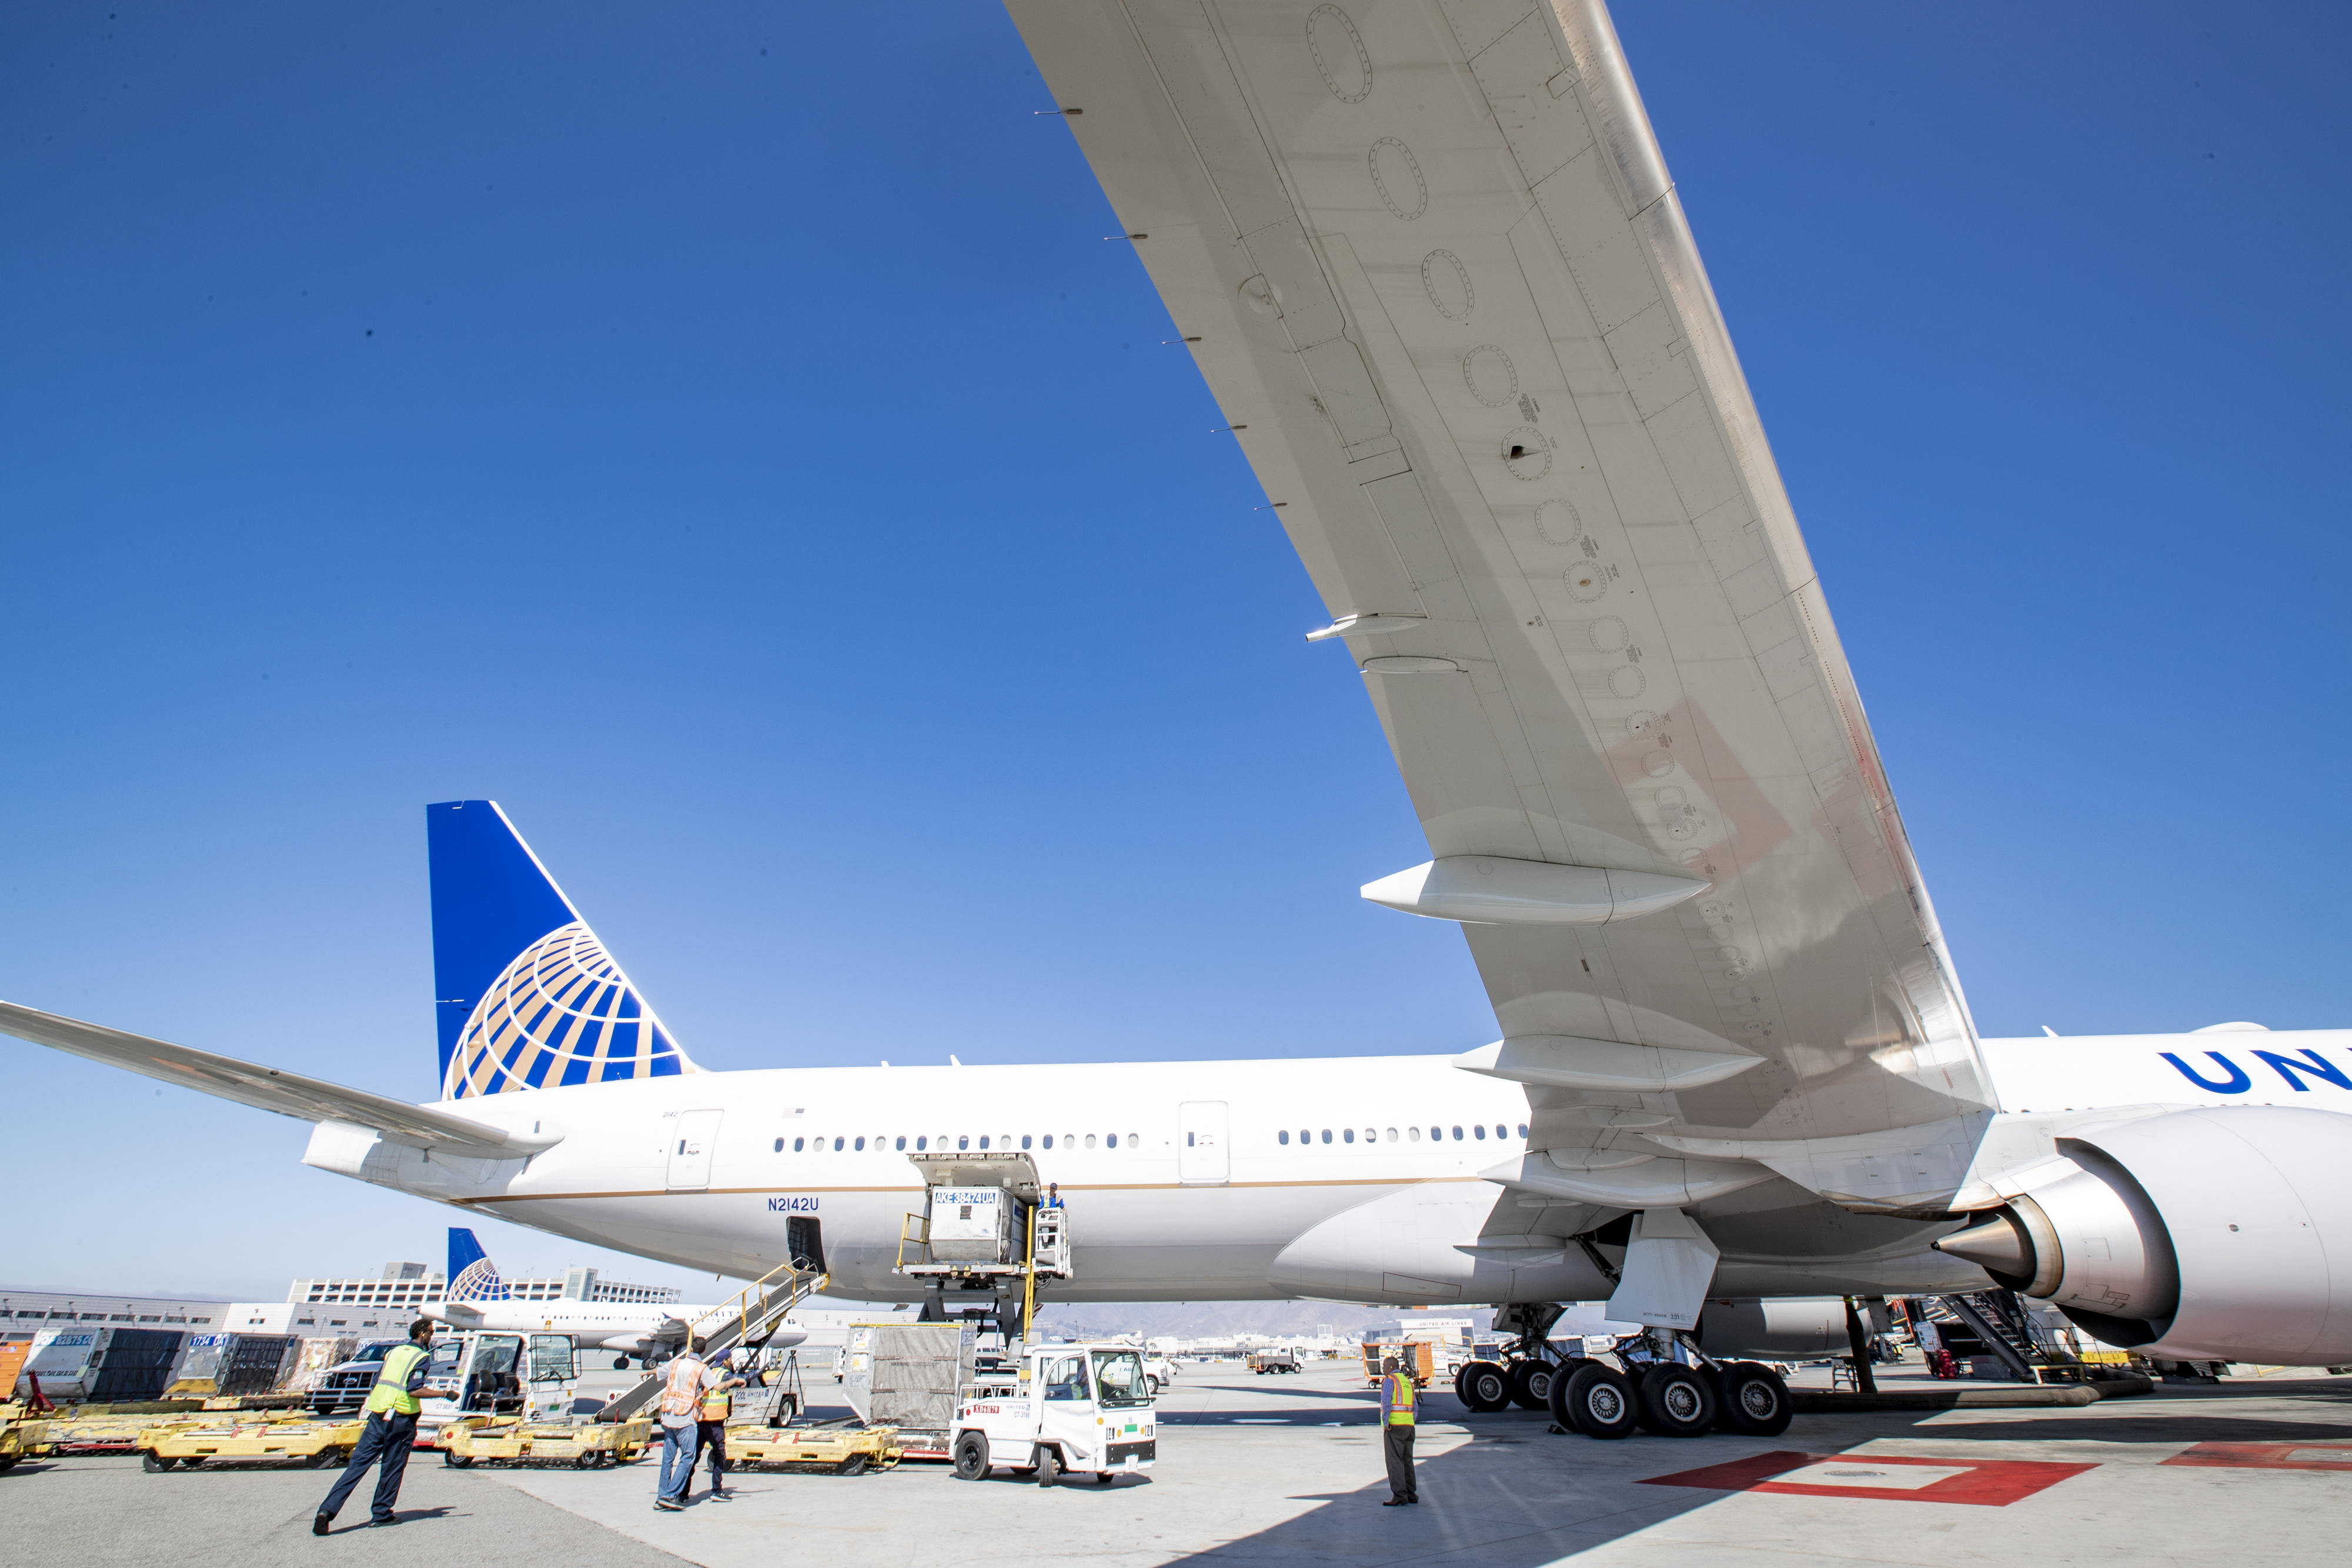 Activity around a United Airlines aircraft during servicing.